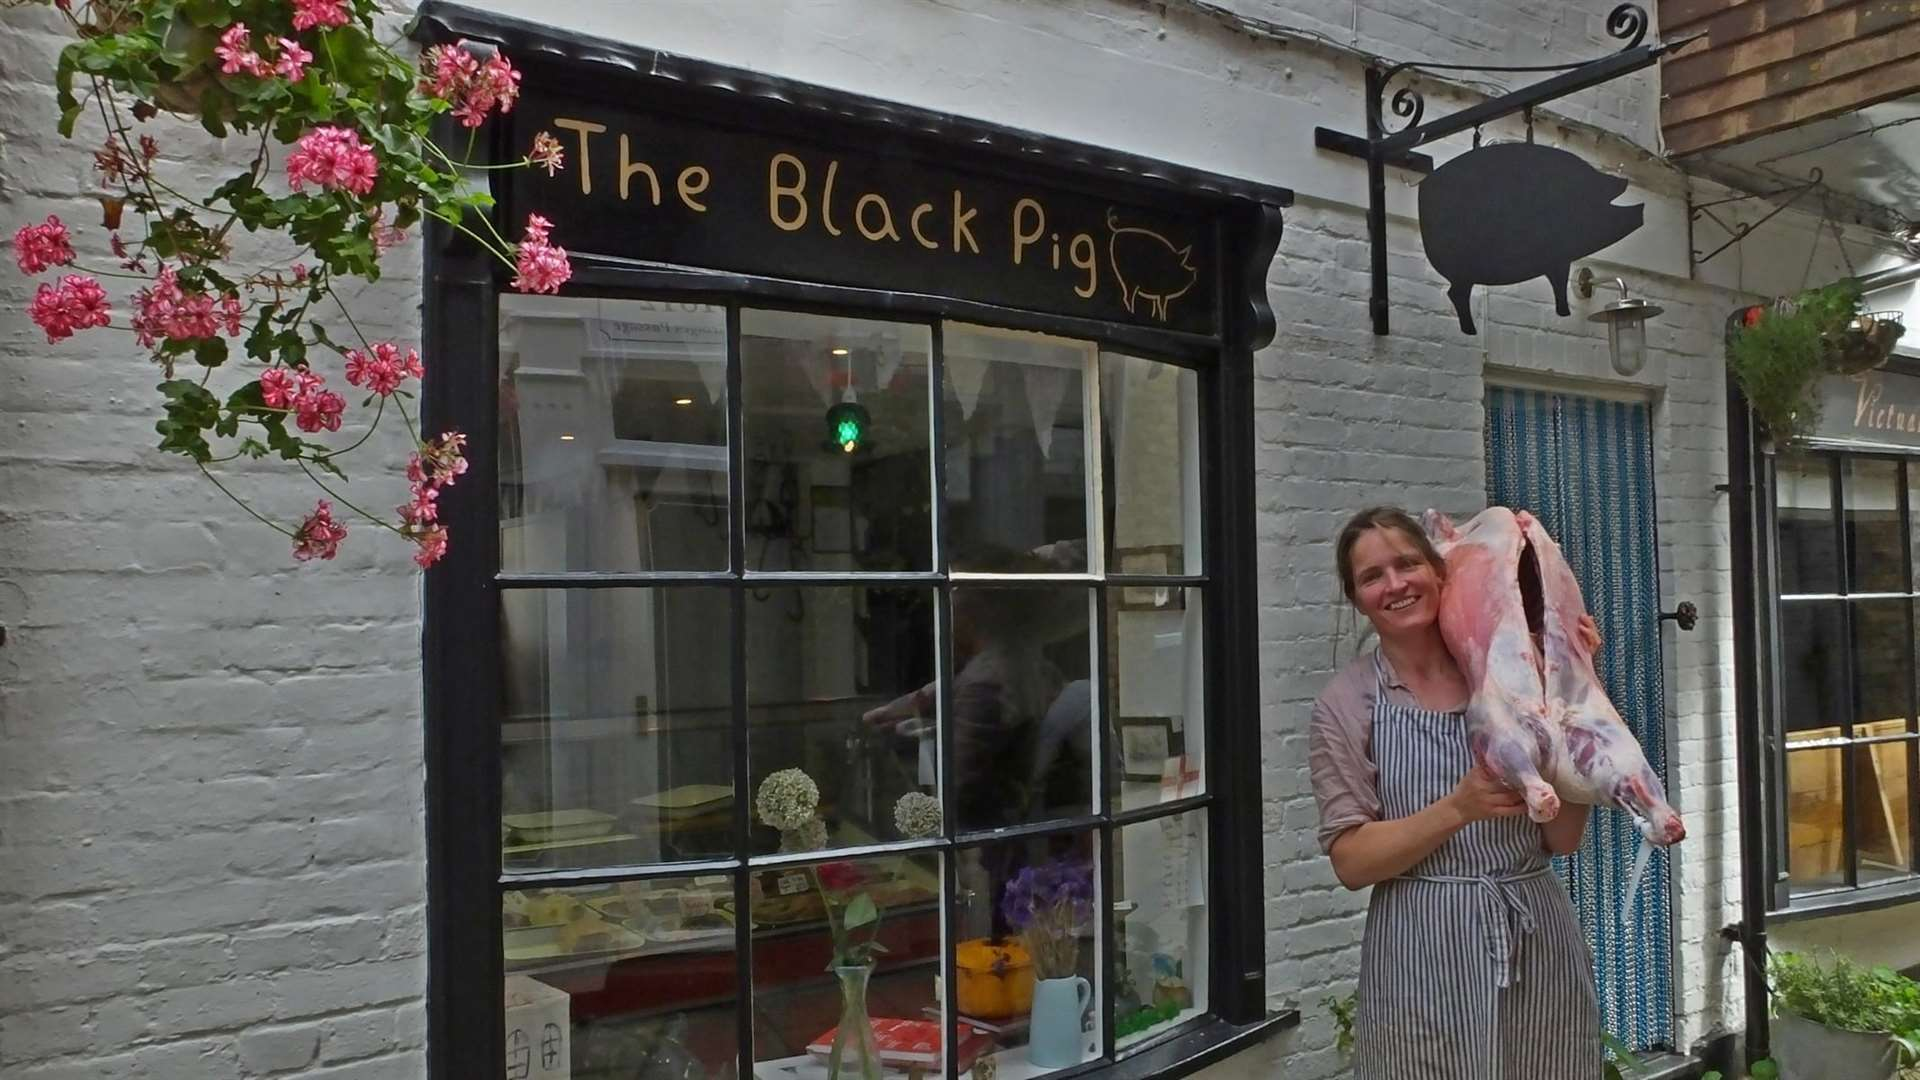 Lizzy Douglas opened The Black Pig in Deal in 2014 and has now won a Young British Foodie award